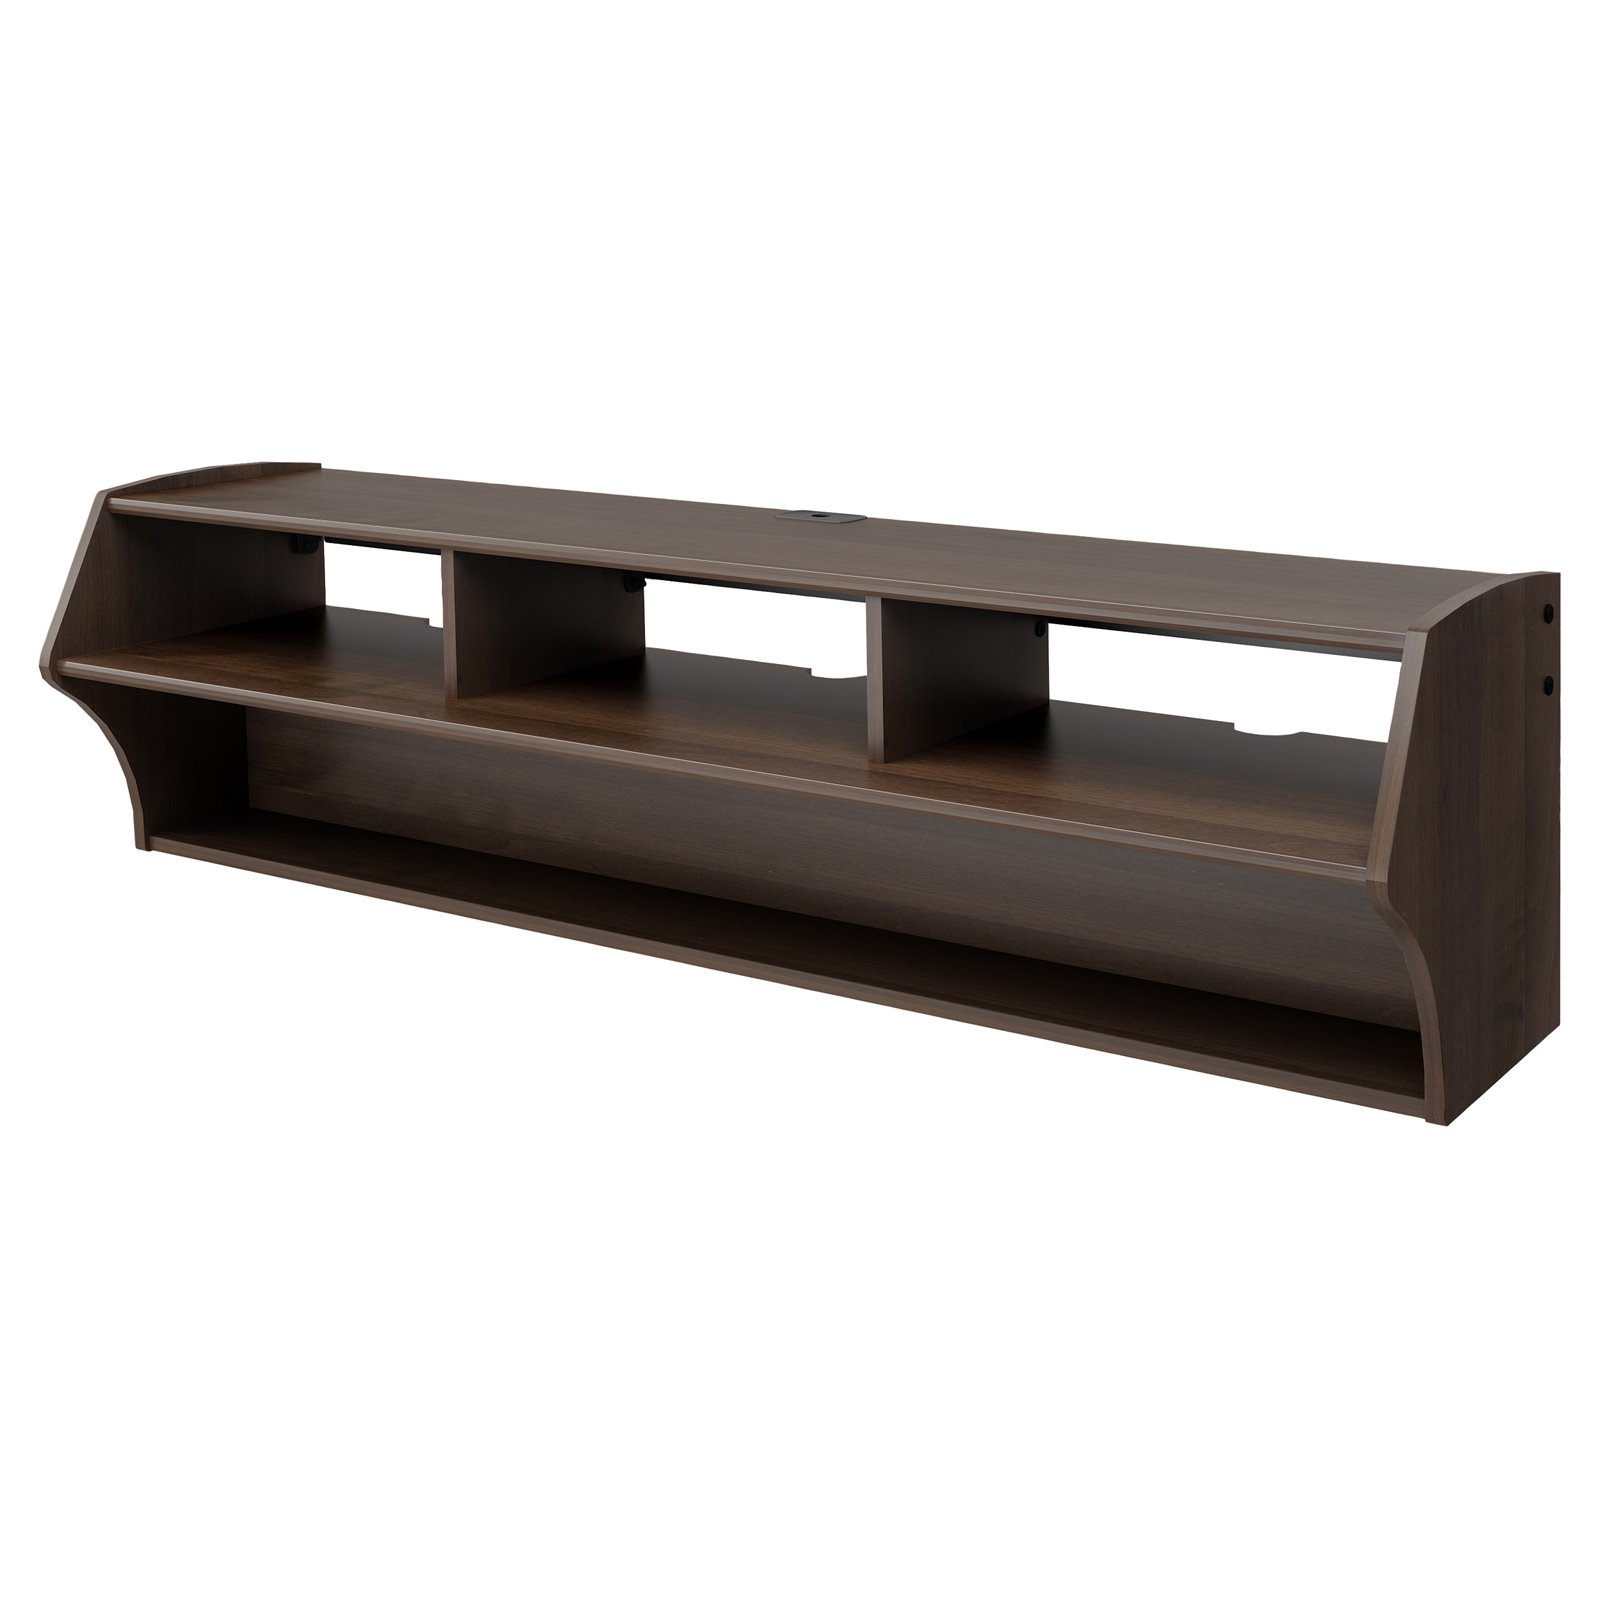 "Well Known Shelves For Tvs On The Wall Regarding Altus Plus Floating Tv Stand For Tvs Up To 60"" – Walmart (View 18 of 20)"